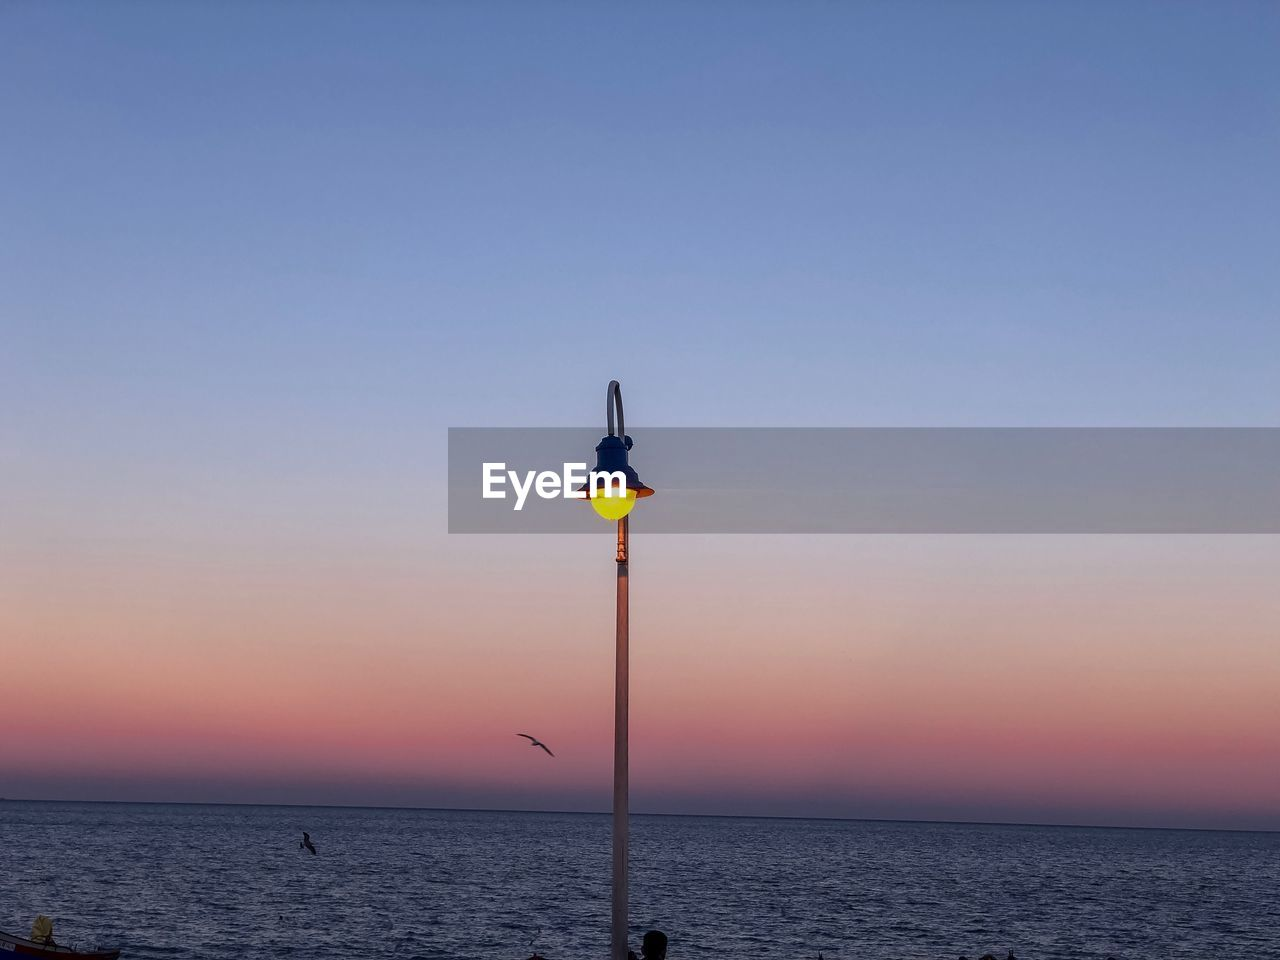 sky, water, sunset, sea, beauty in nature, lighting equipment, horizon over water, scenics - nature, horizon, tranquility, street light, copy space, street, pole, tranquil scene, nature, clear sky, illuminated, no people, outdoors, electric lamp